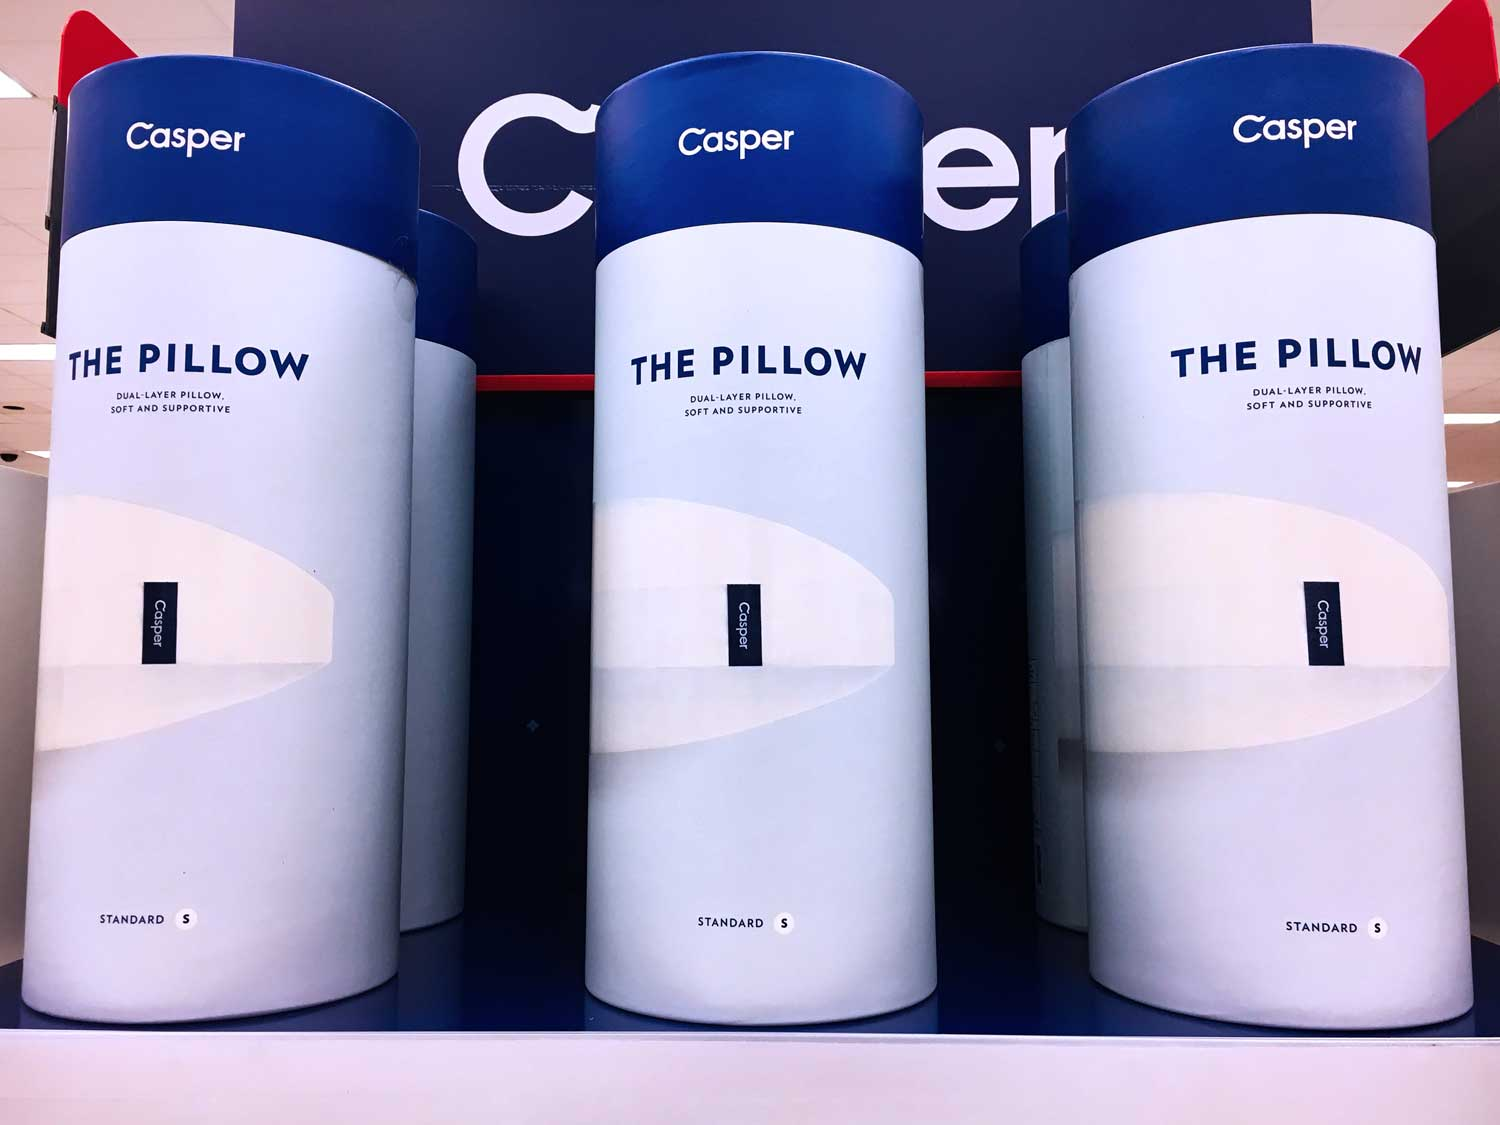 YOU CAN PREVIEW THE CASPER PILLOW AT MOST TARGET STORES. THE PACKAGING ALLOWS YOU TO FEEL THE FLUFFINESS FOR YOURSELF! COMES WITH 100 NIGHT TRIAL.